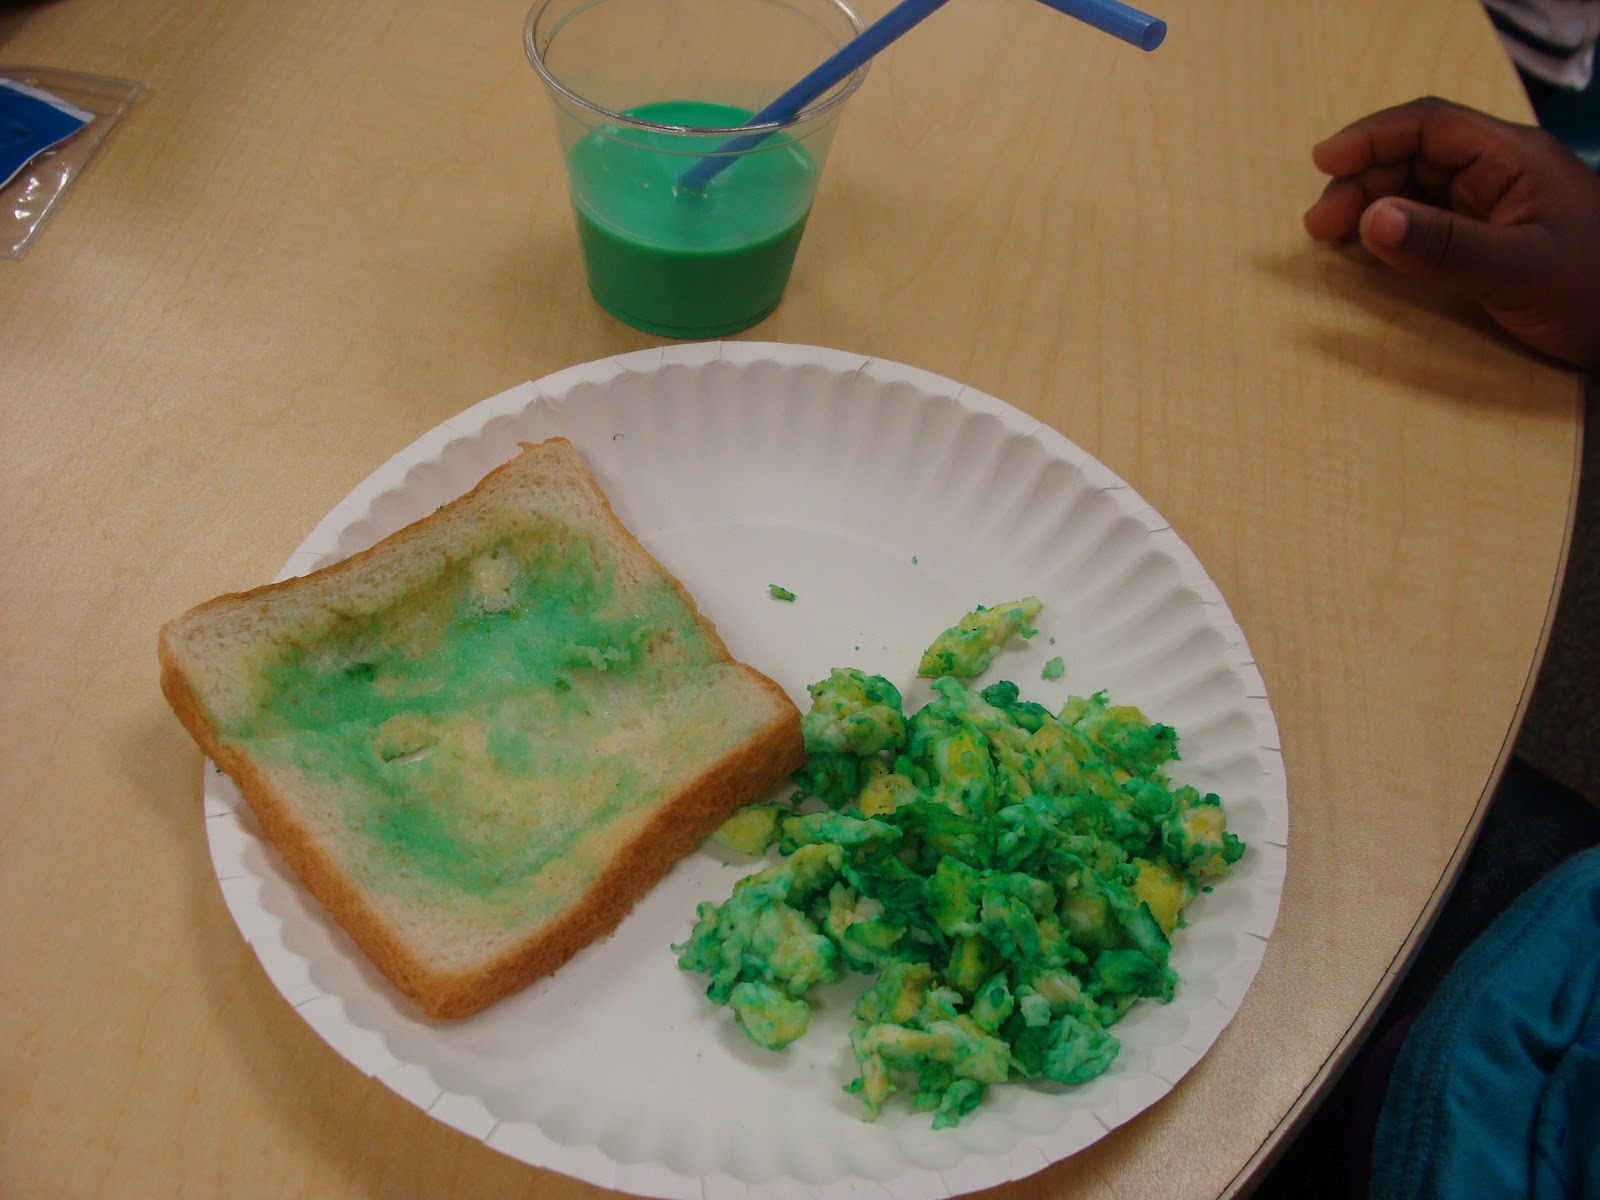 We Started The Morning By Doing A Shared Reading Of Green Eggs And Ham After Book Made Toast Milk Here Are